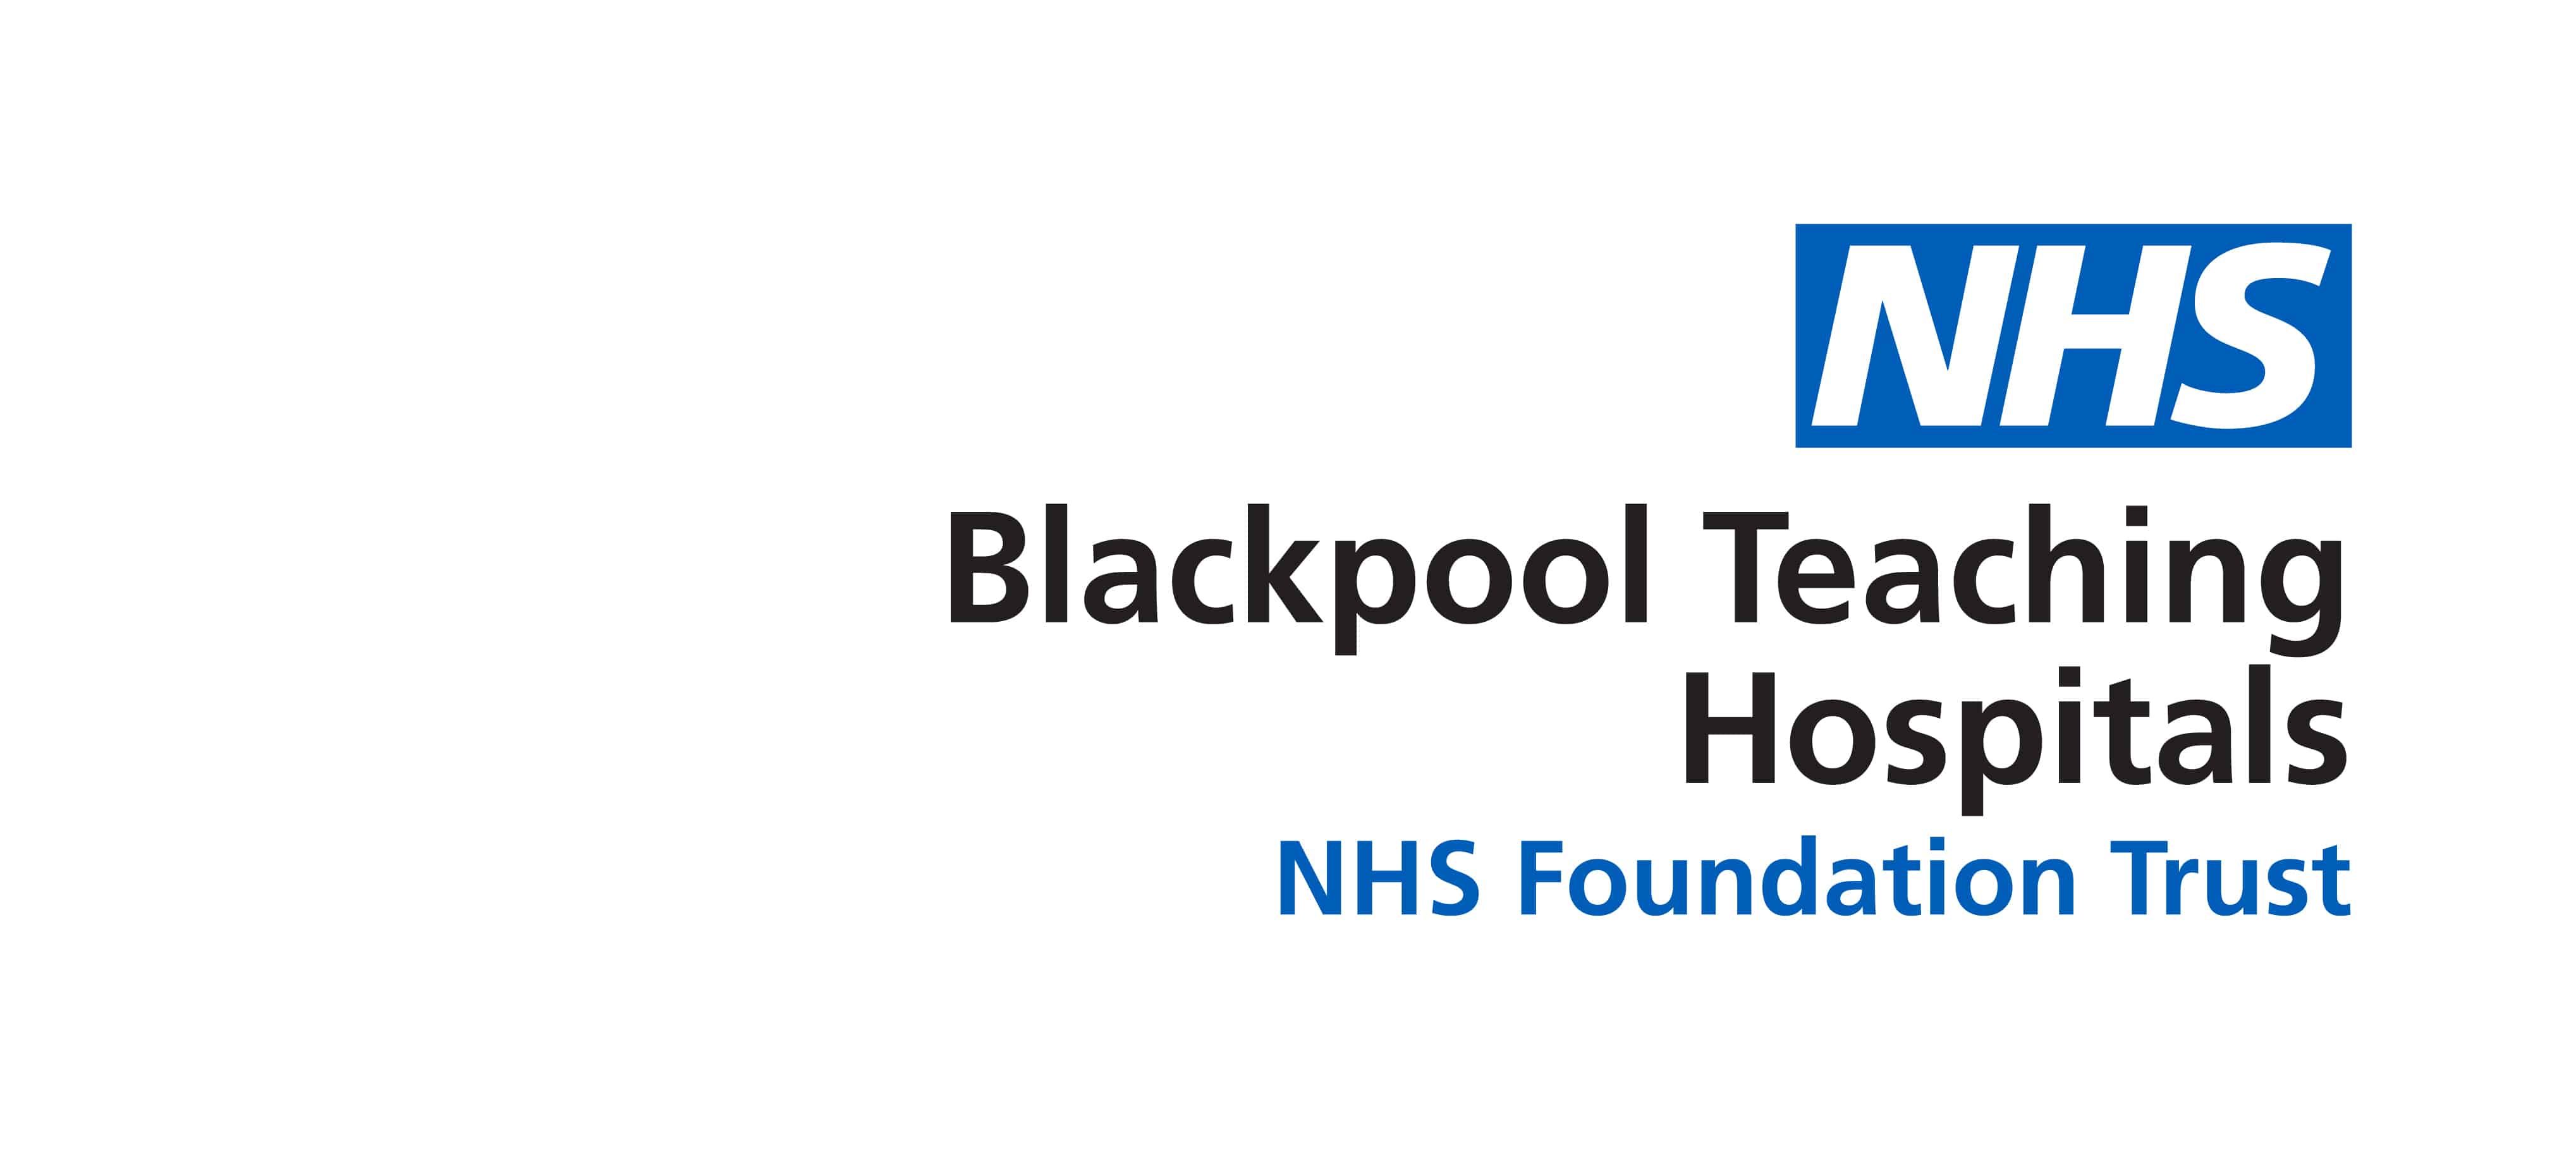 NEW Blackpool Teaching Hospitals NHS Foundation Trust RGB BLUE new logo ...